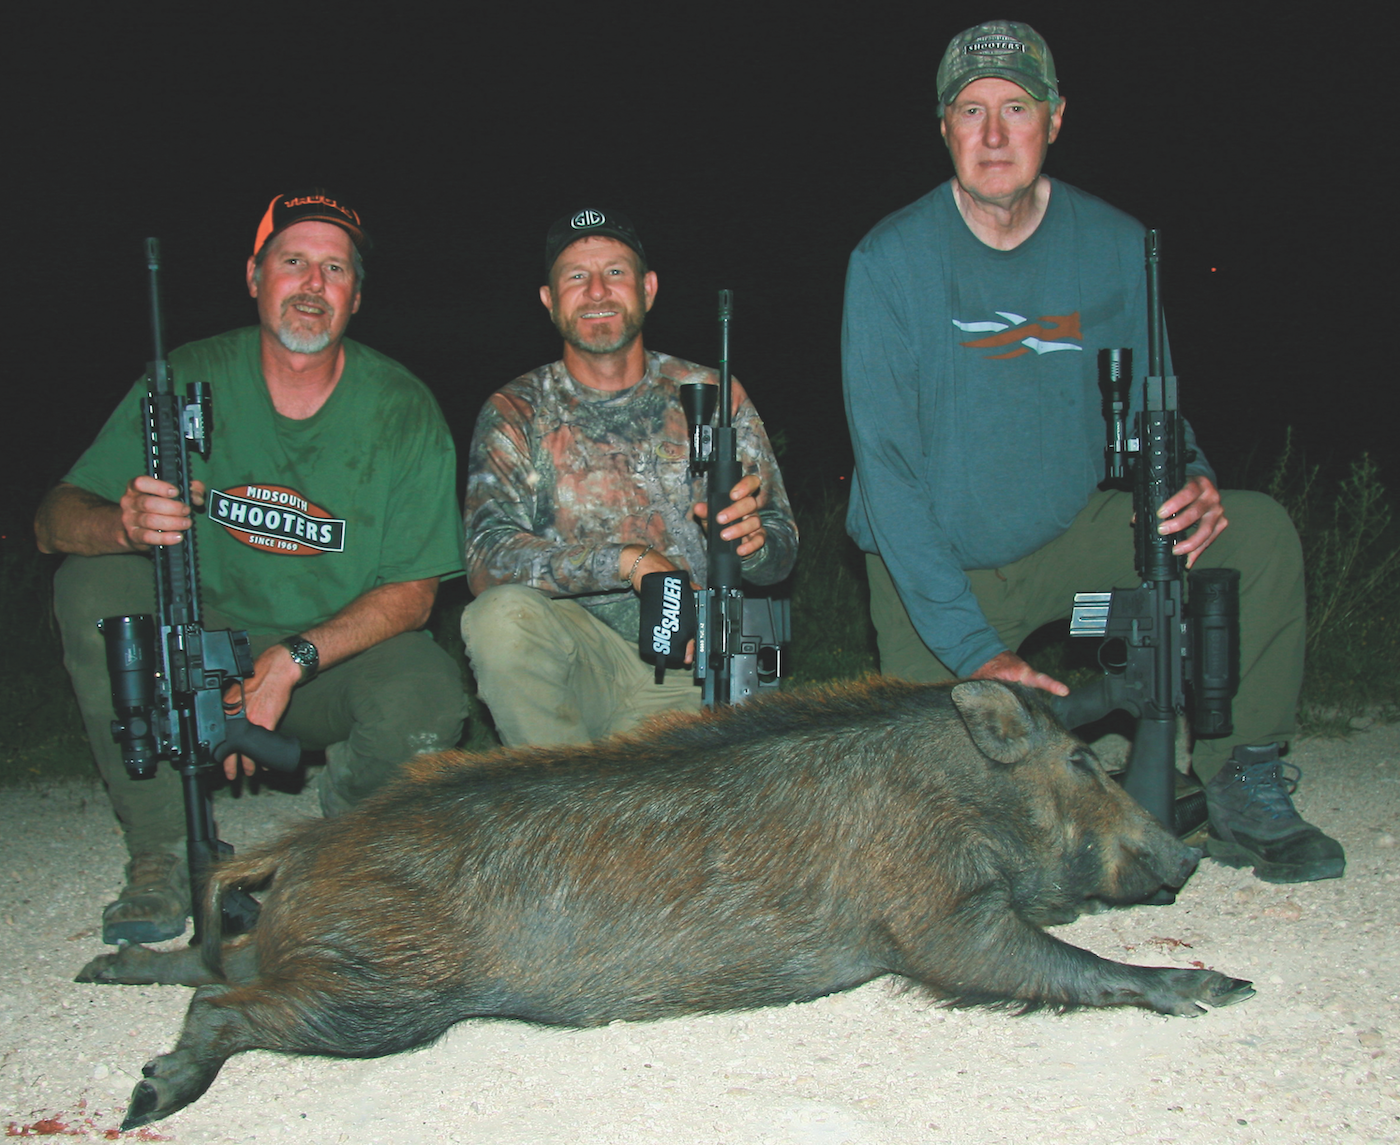 Best AR Ammo for Hunting Hogs at Night | Grand View Outdoors